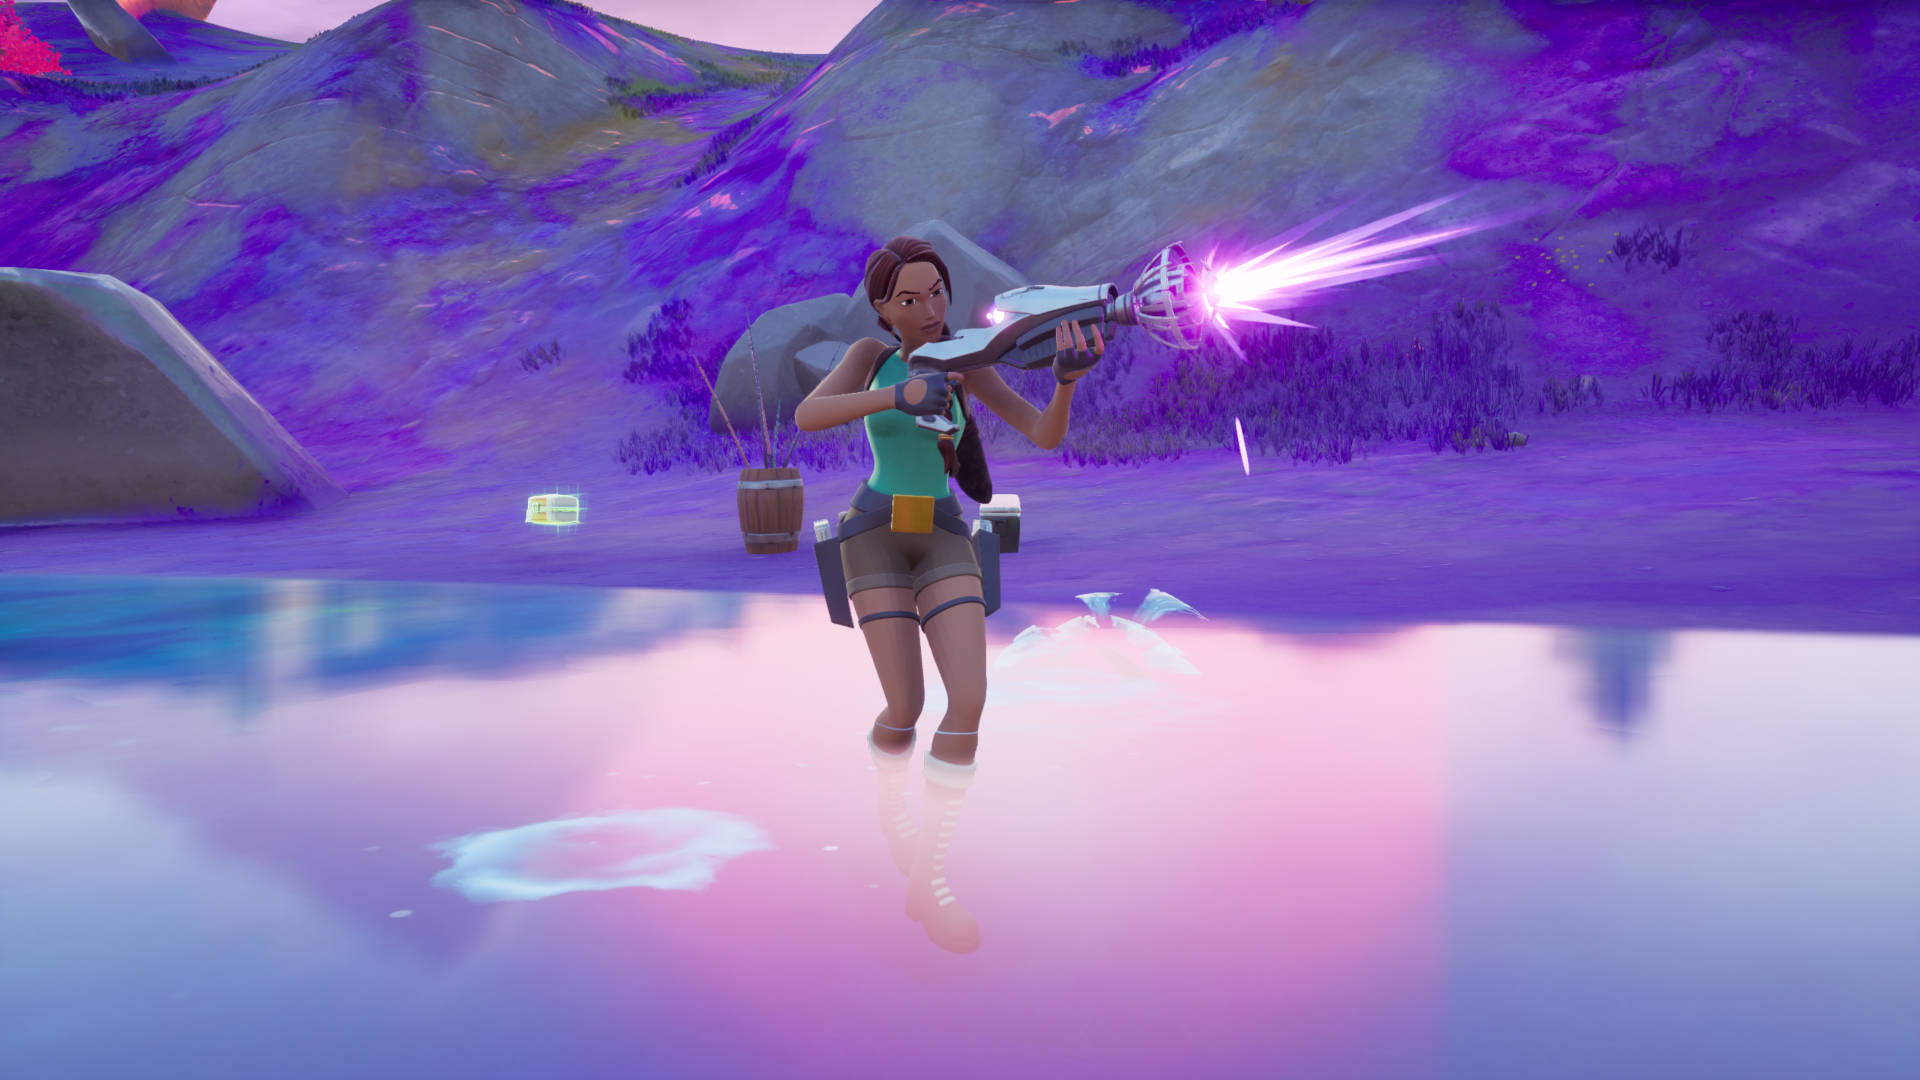 Fortnito gods, of the alien to fly the spears, than that he ought to, and UFOs